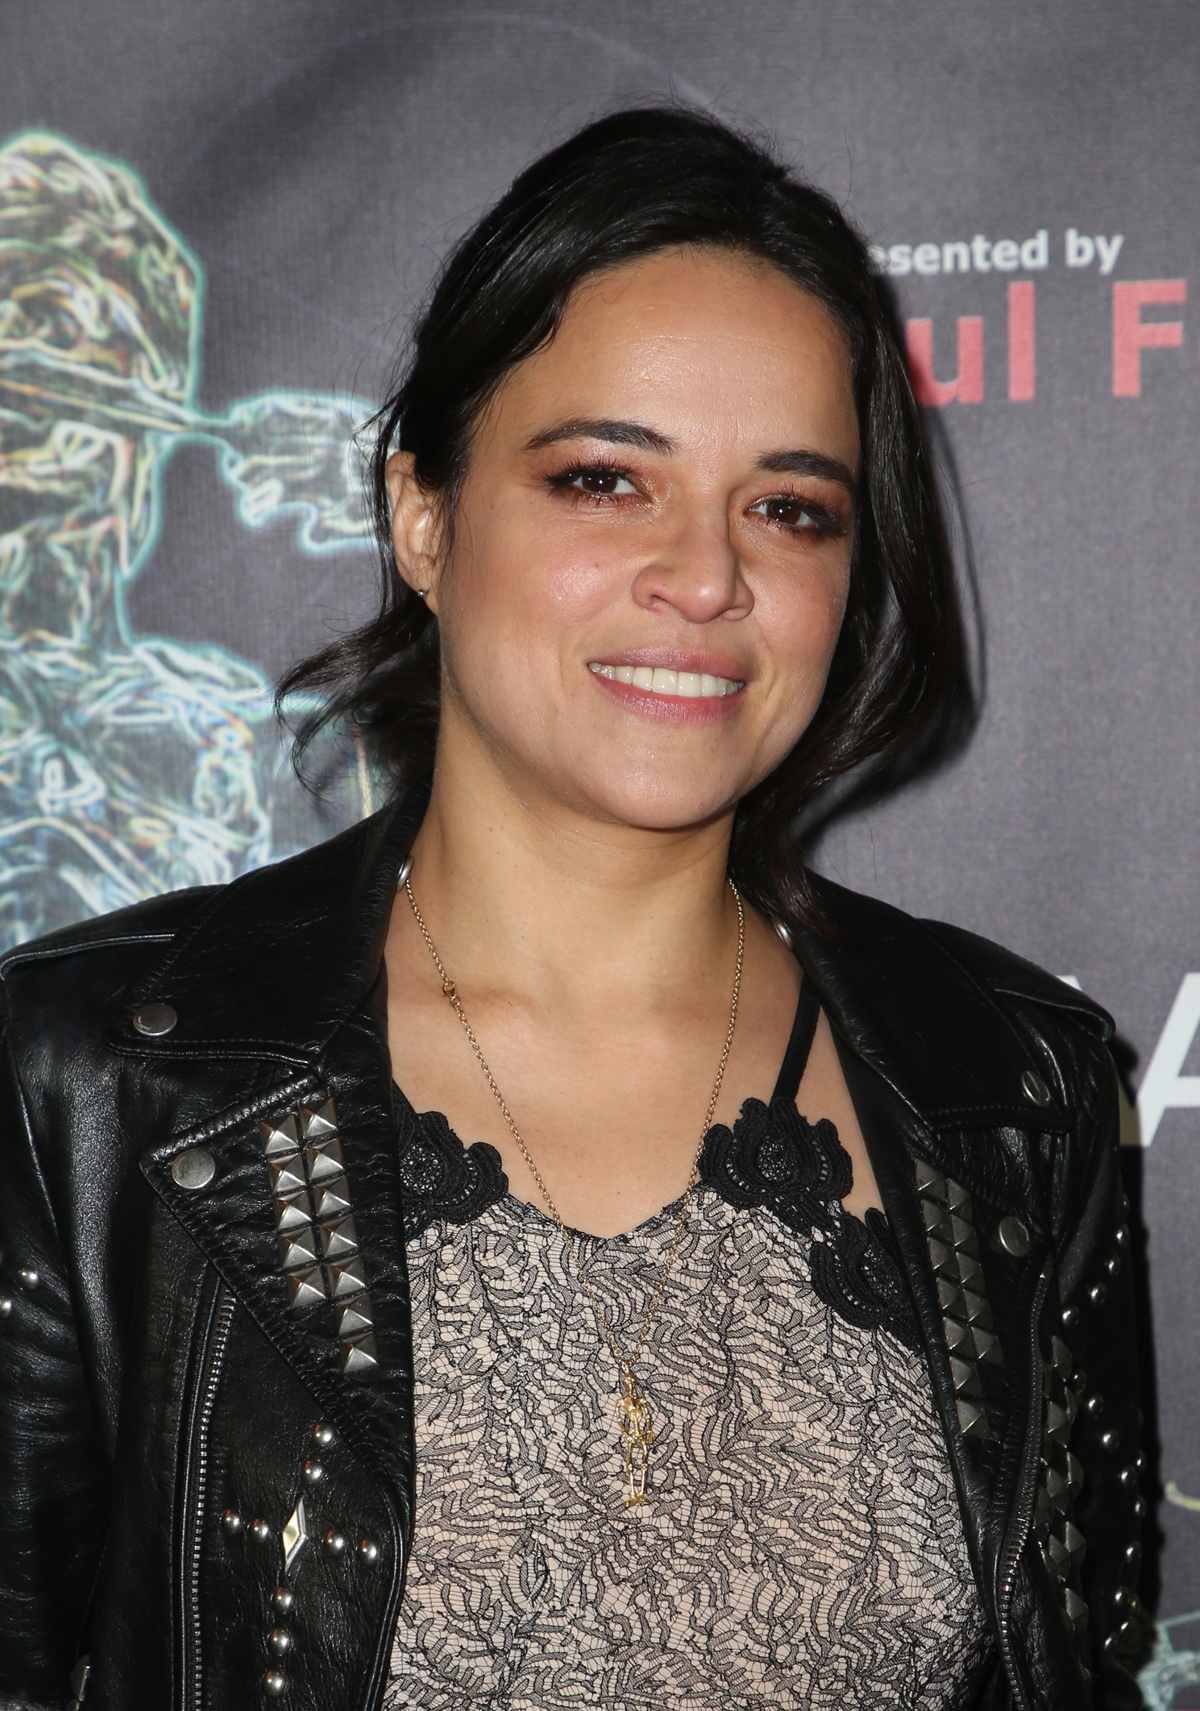 BEVERLY HILLS, CA - APRIL 26: Michelle Rodriguez, at the 2018 Artemis Awards Gala at the Ahrya Fine Arts Theater in Beverly Hills, California on April 26, 2018. Credit: Faye Sadou/MediaPunch